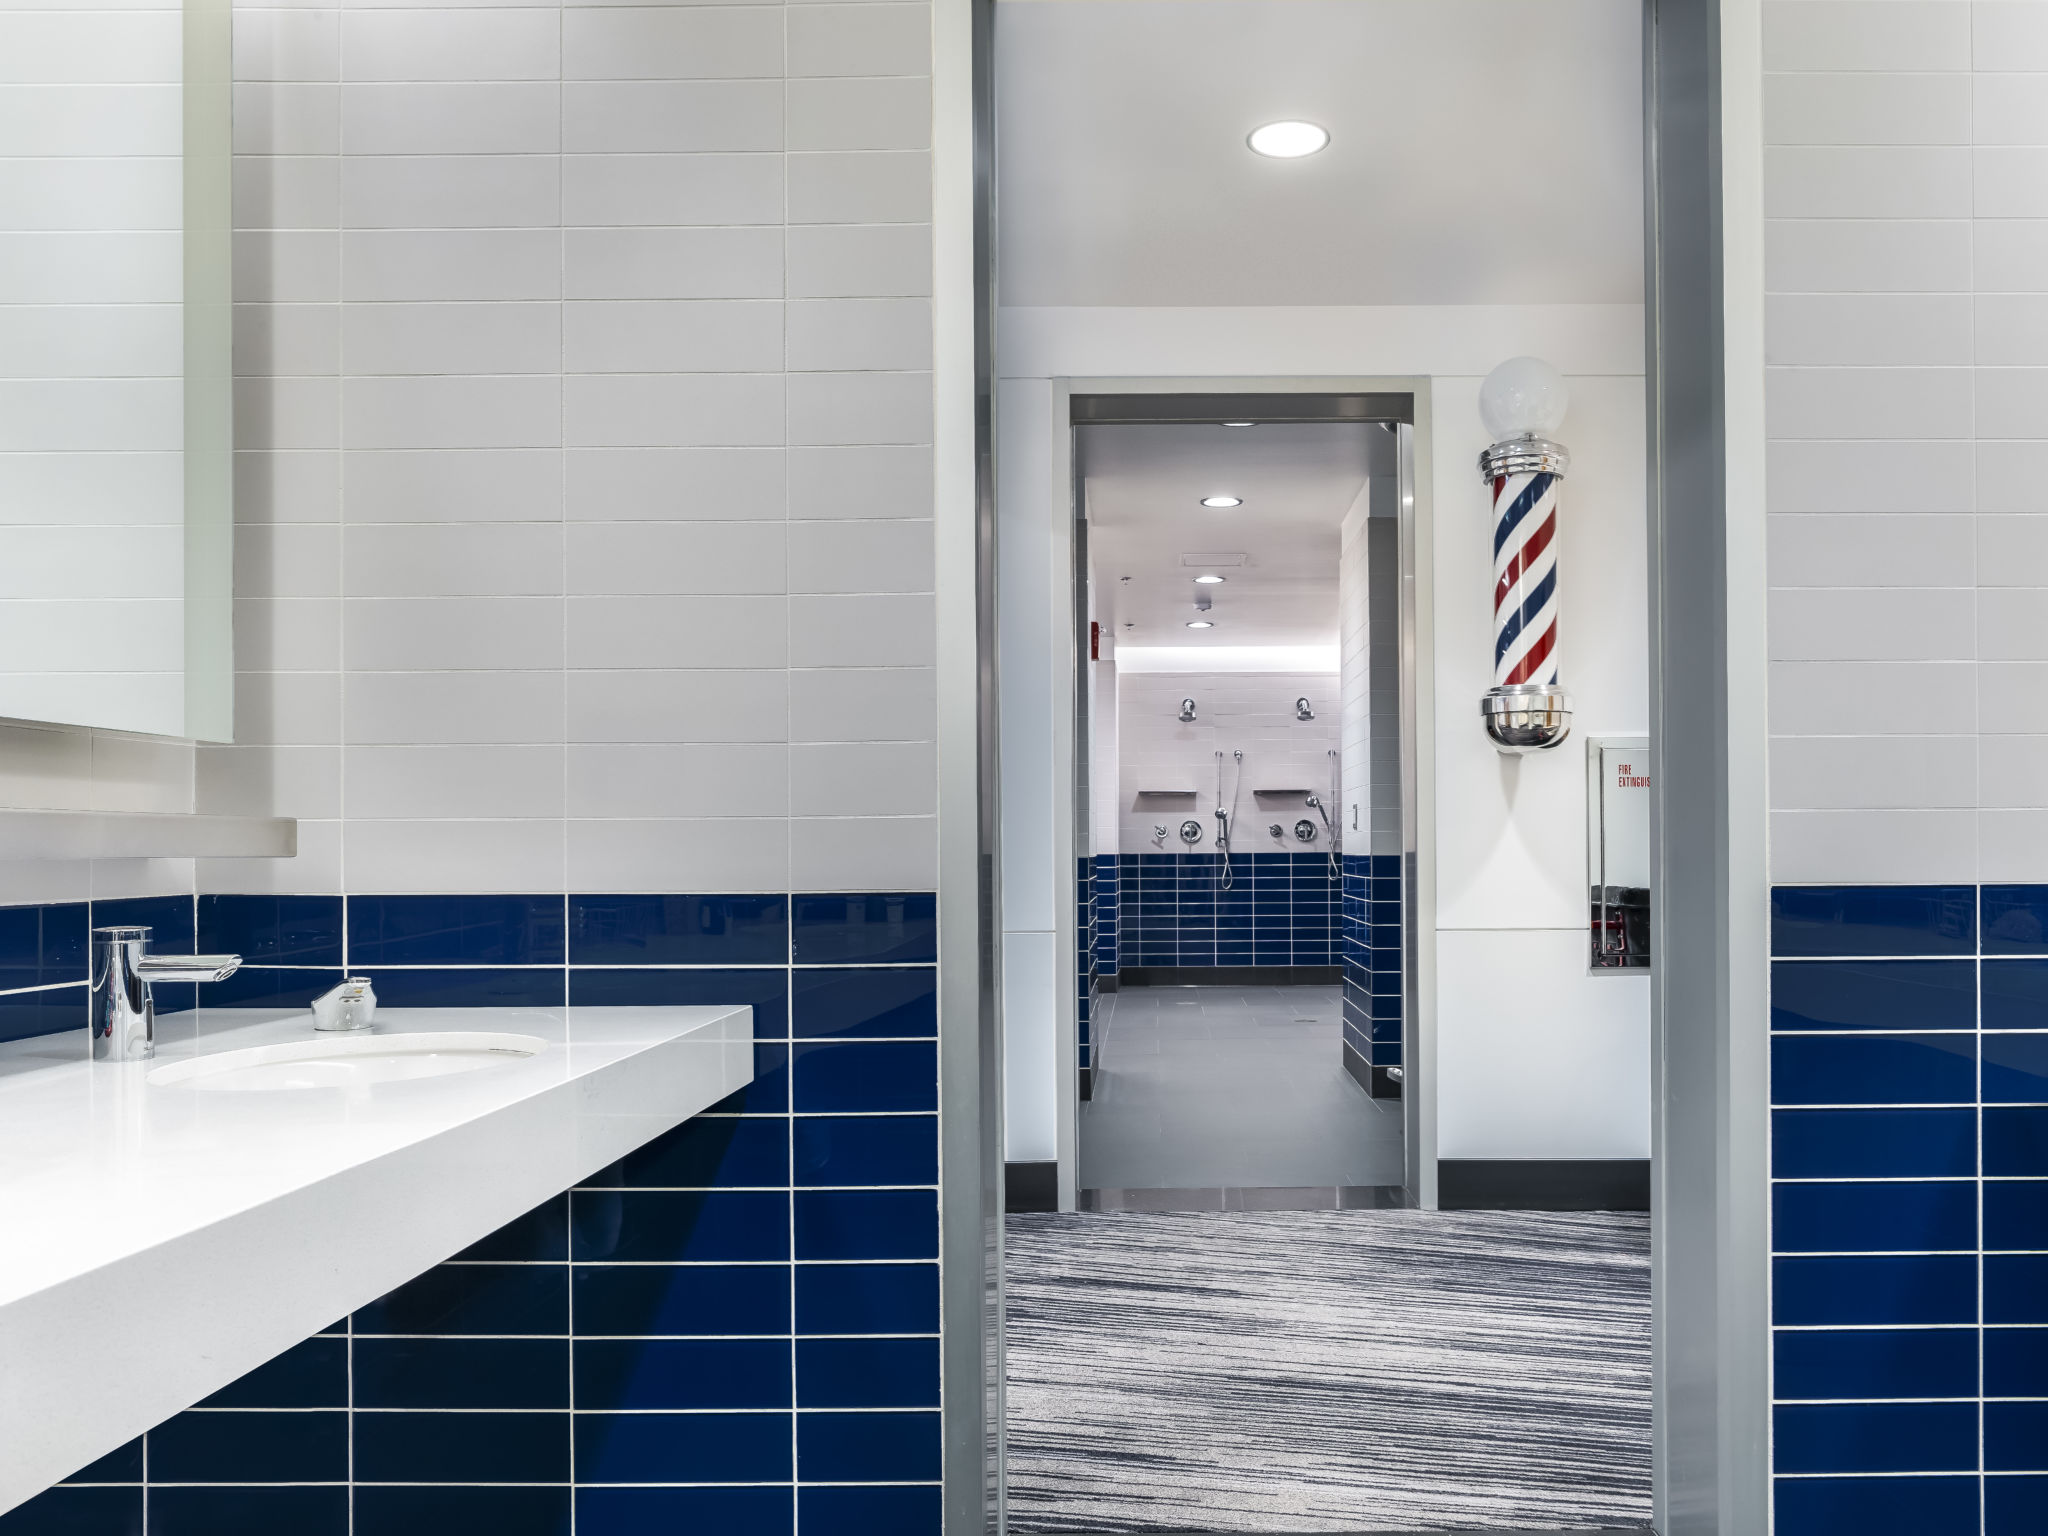 The new Chicago Cubs clubhouse has been fitted with hands-free, water-efficient devices to maximize sustainability and minimize the spread of germs. Photo © Hedrich Blessing